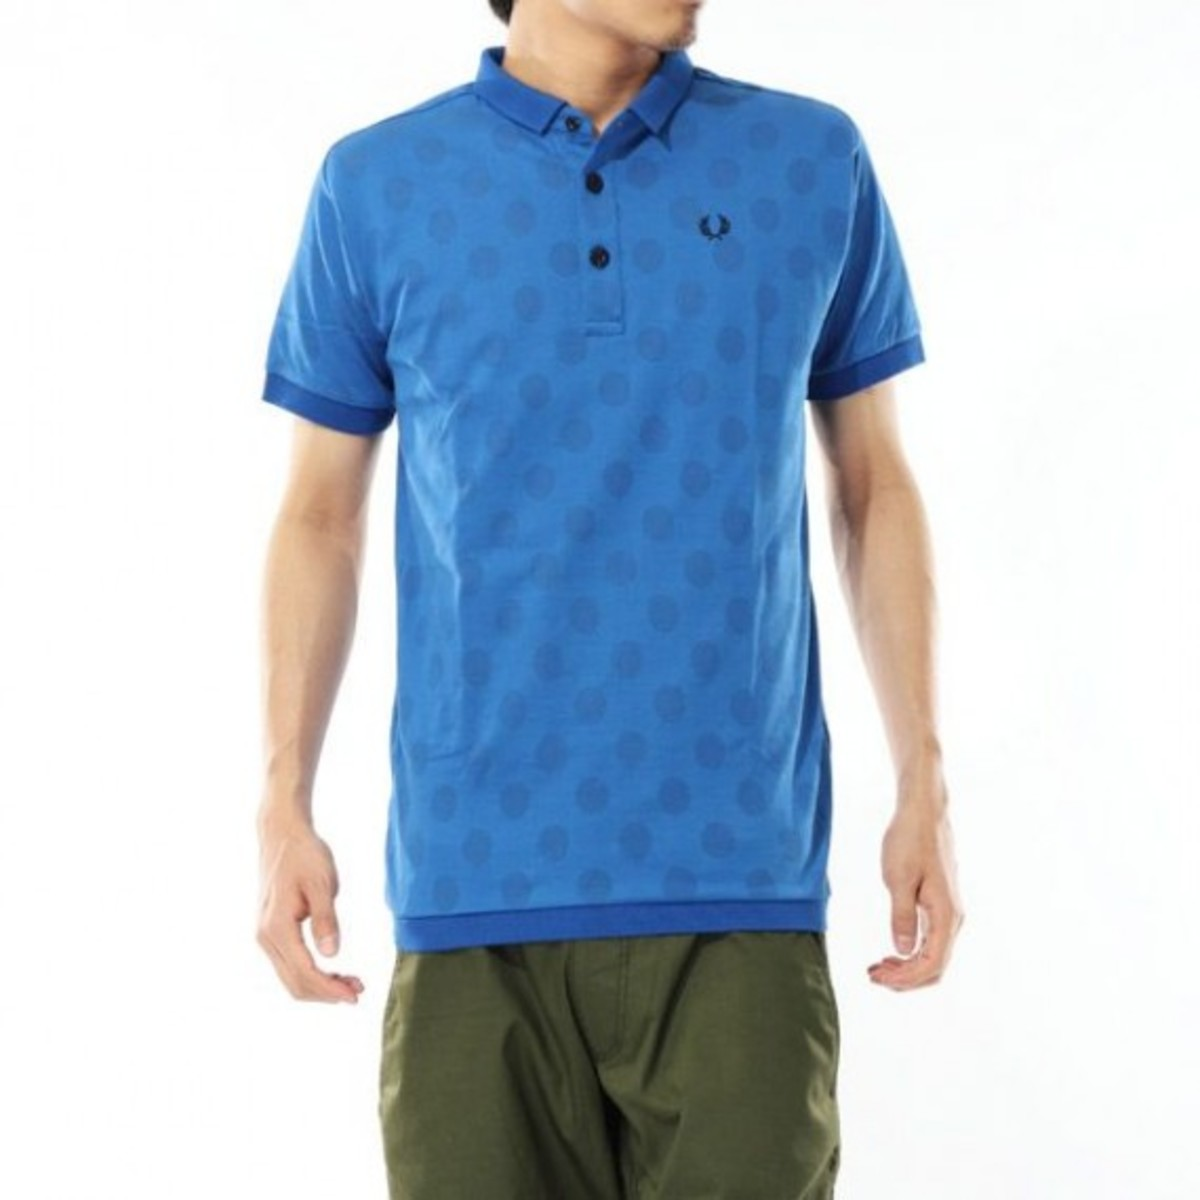 dot-polo-shirt-02